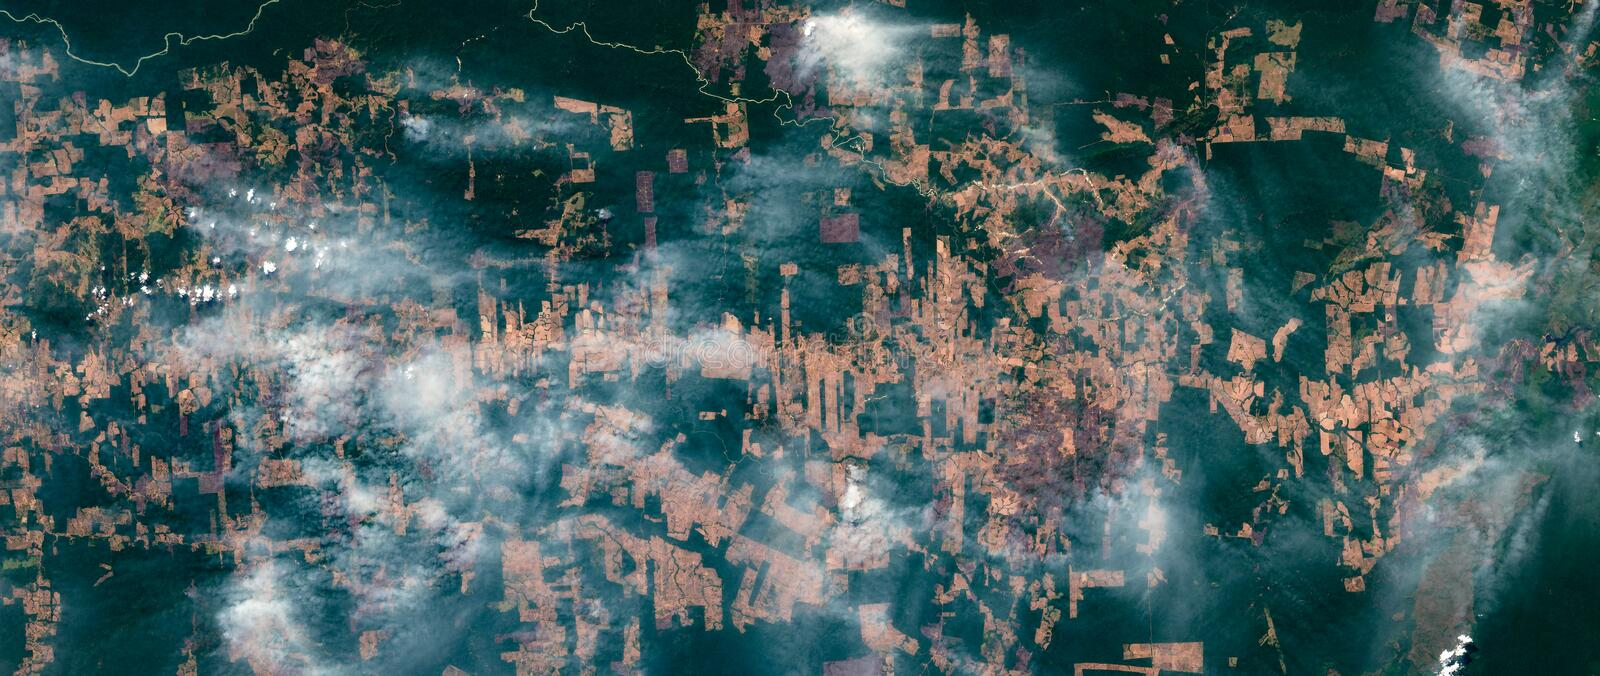 High resolution satellite image of forest slash-and-burn fires and smoke clouds in the Amazon rain forest in August 2019, Brazil stock image